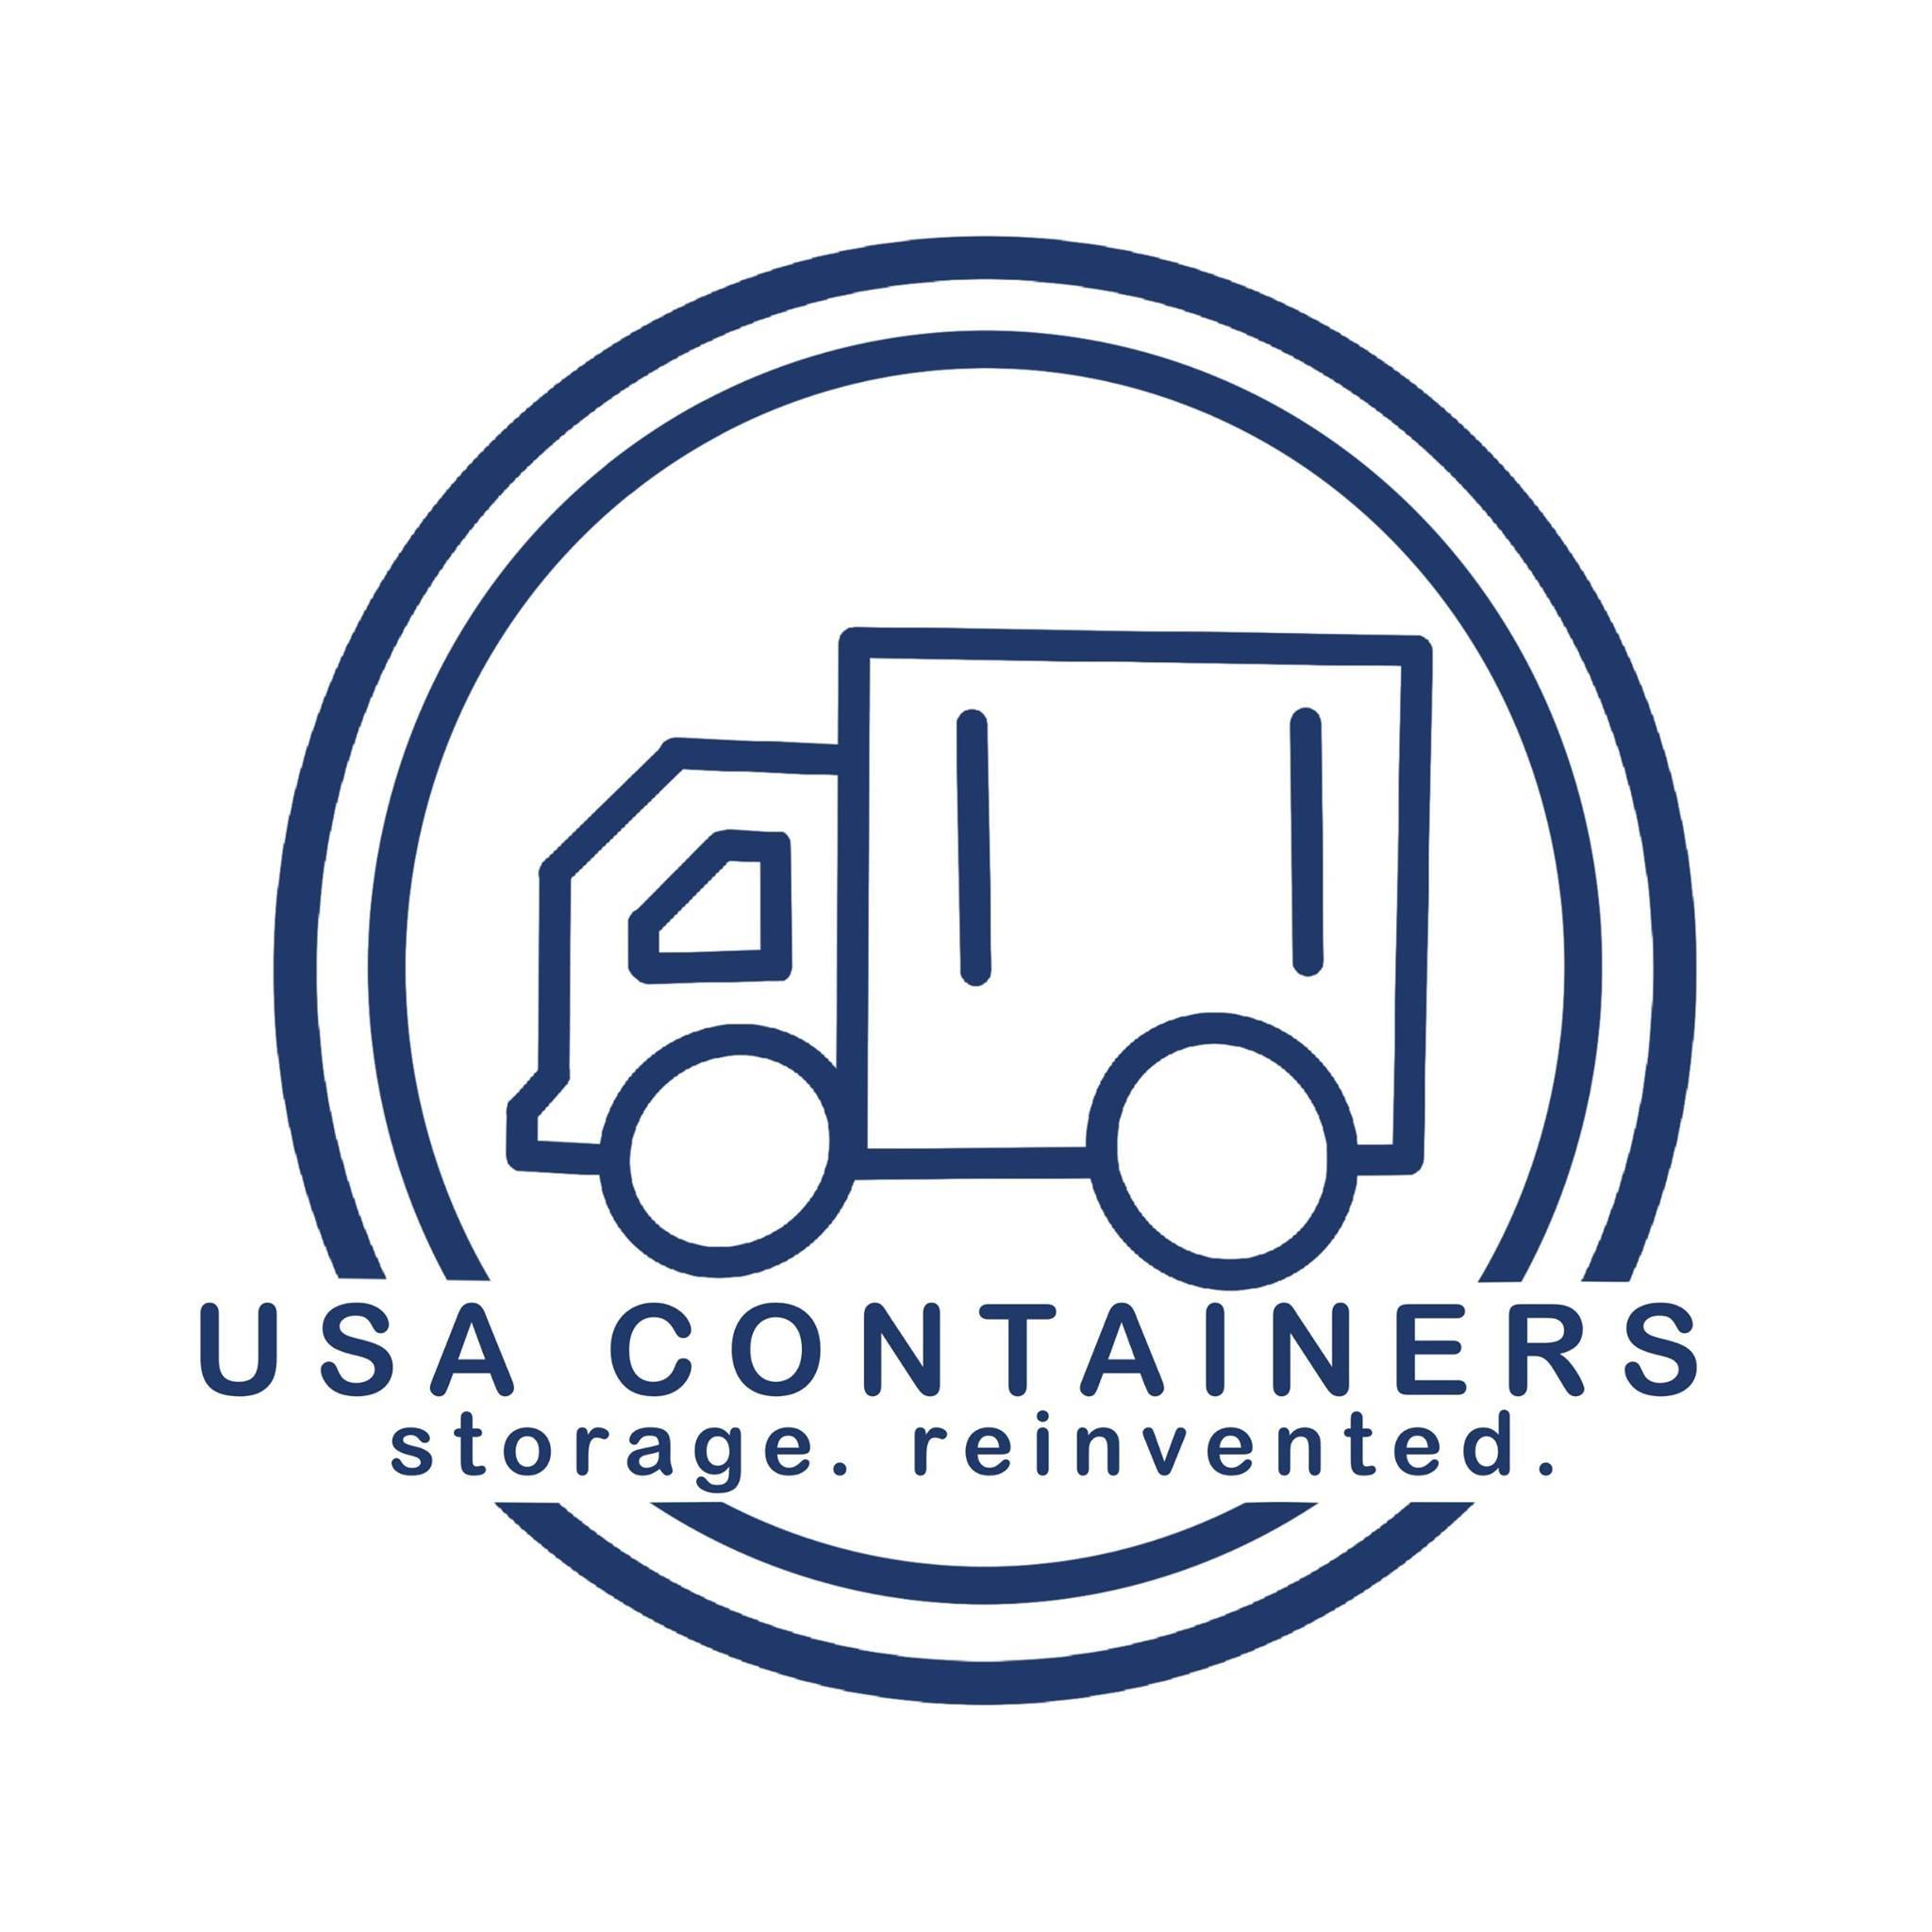 USA Containers - Reinventing storage all across America